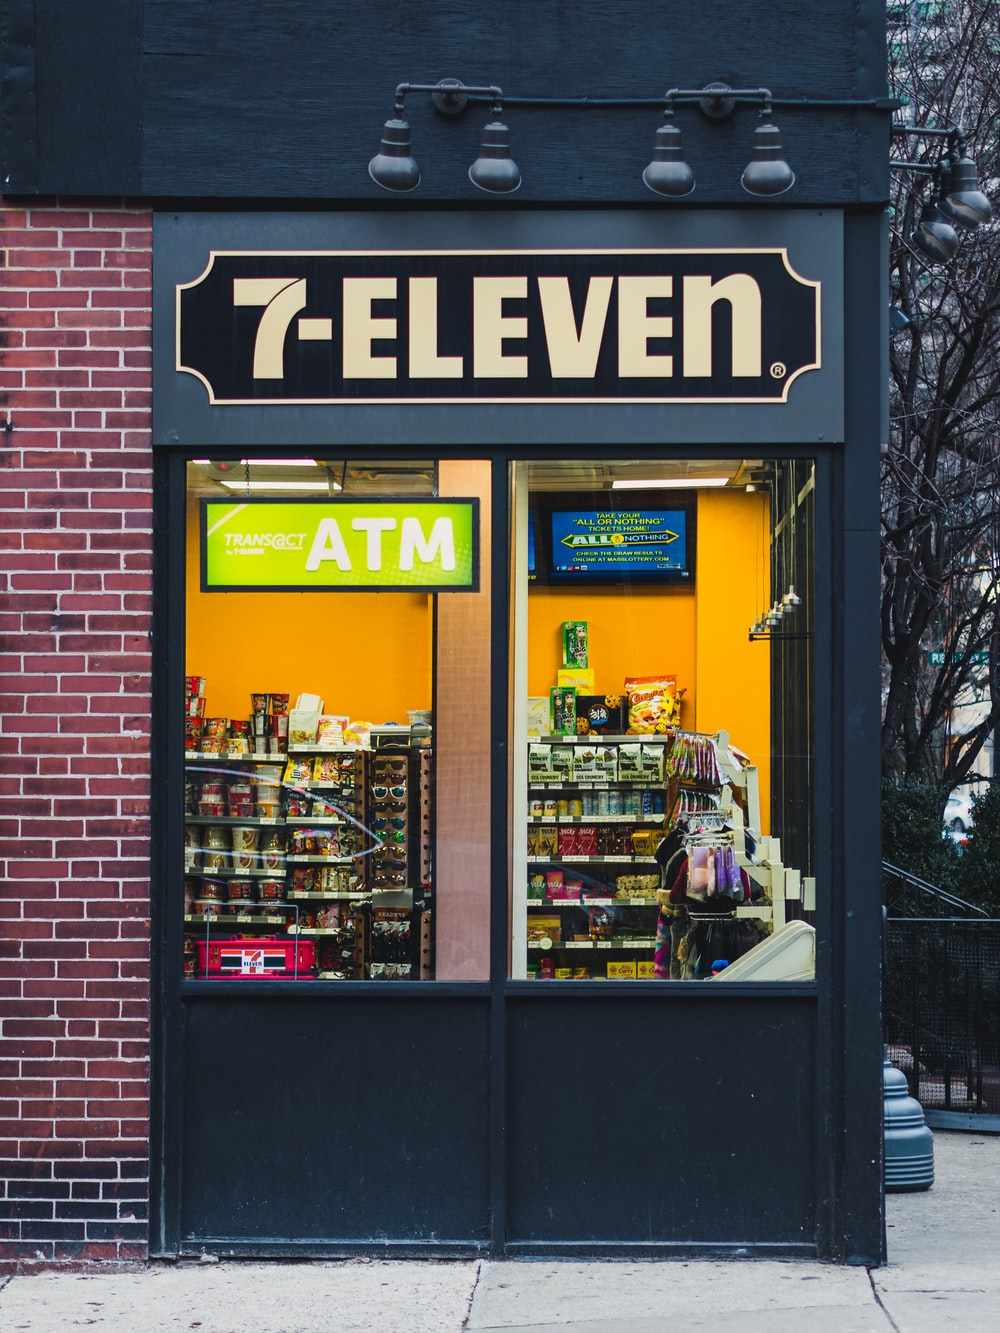 7-Eleven store during day